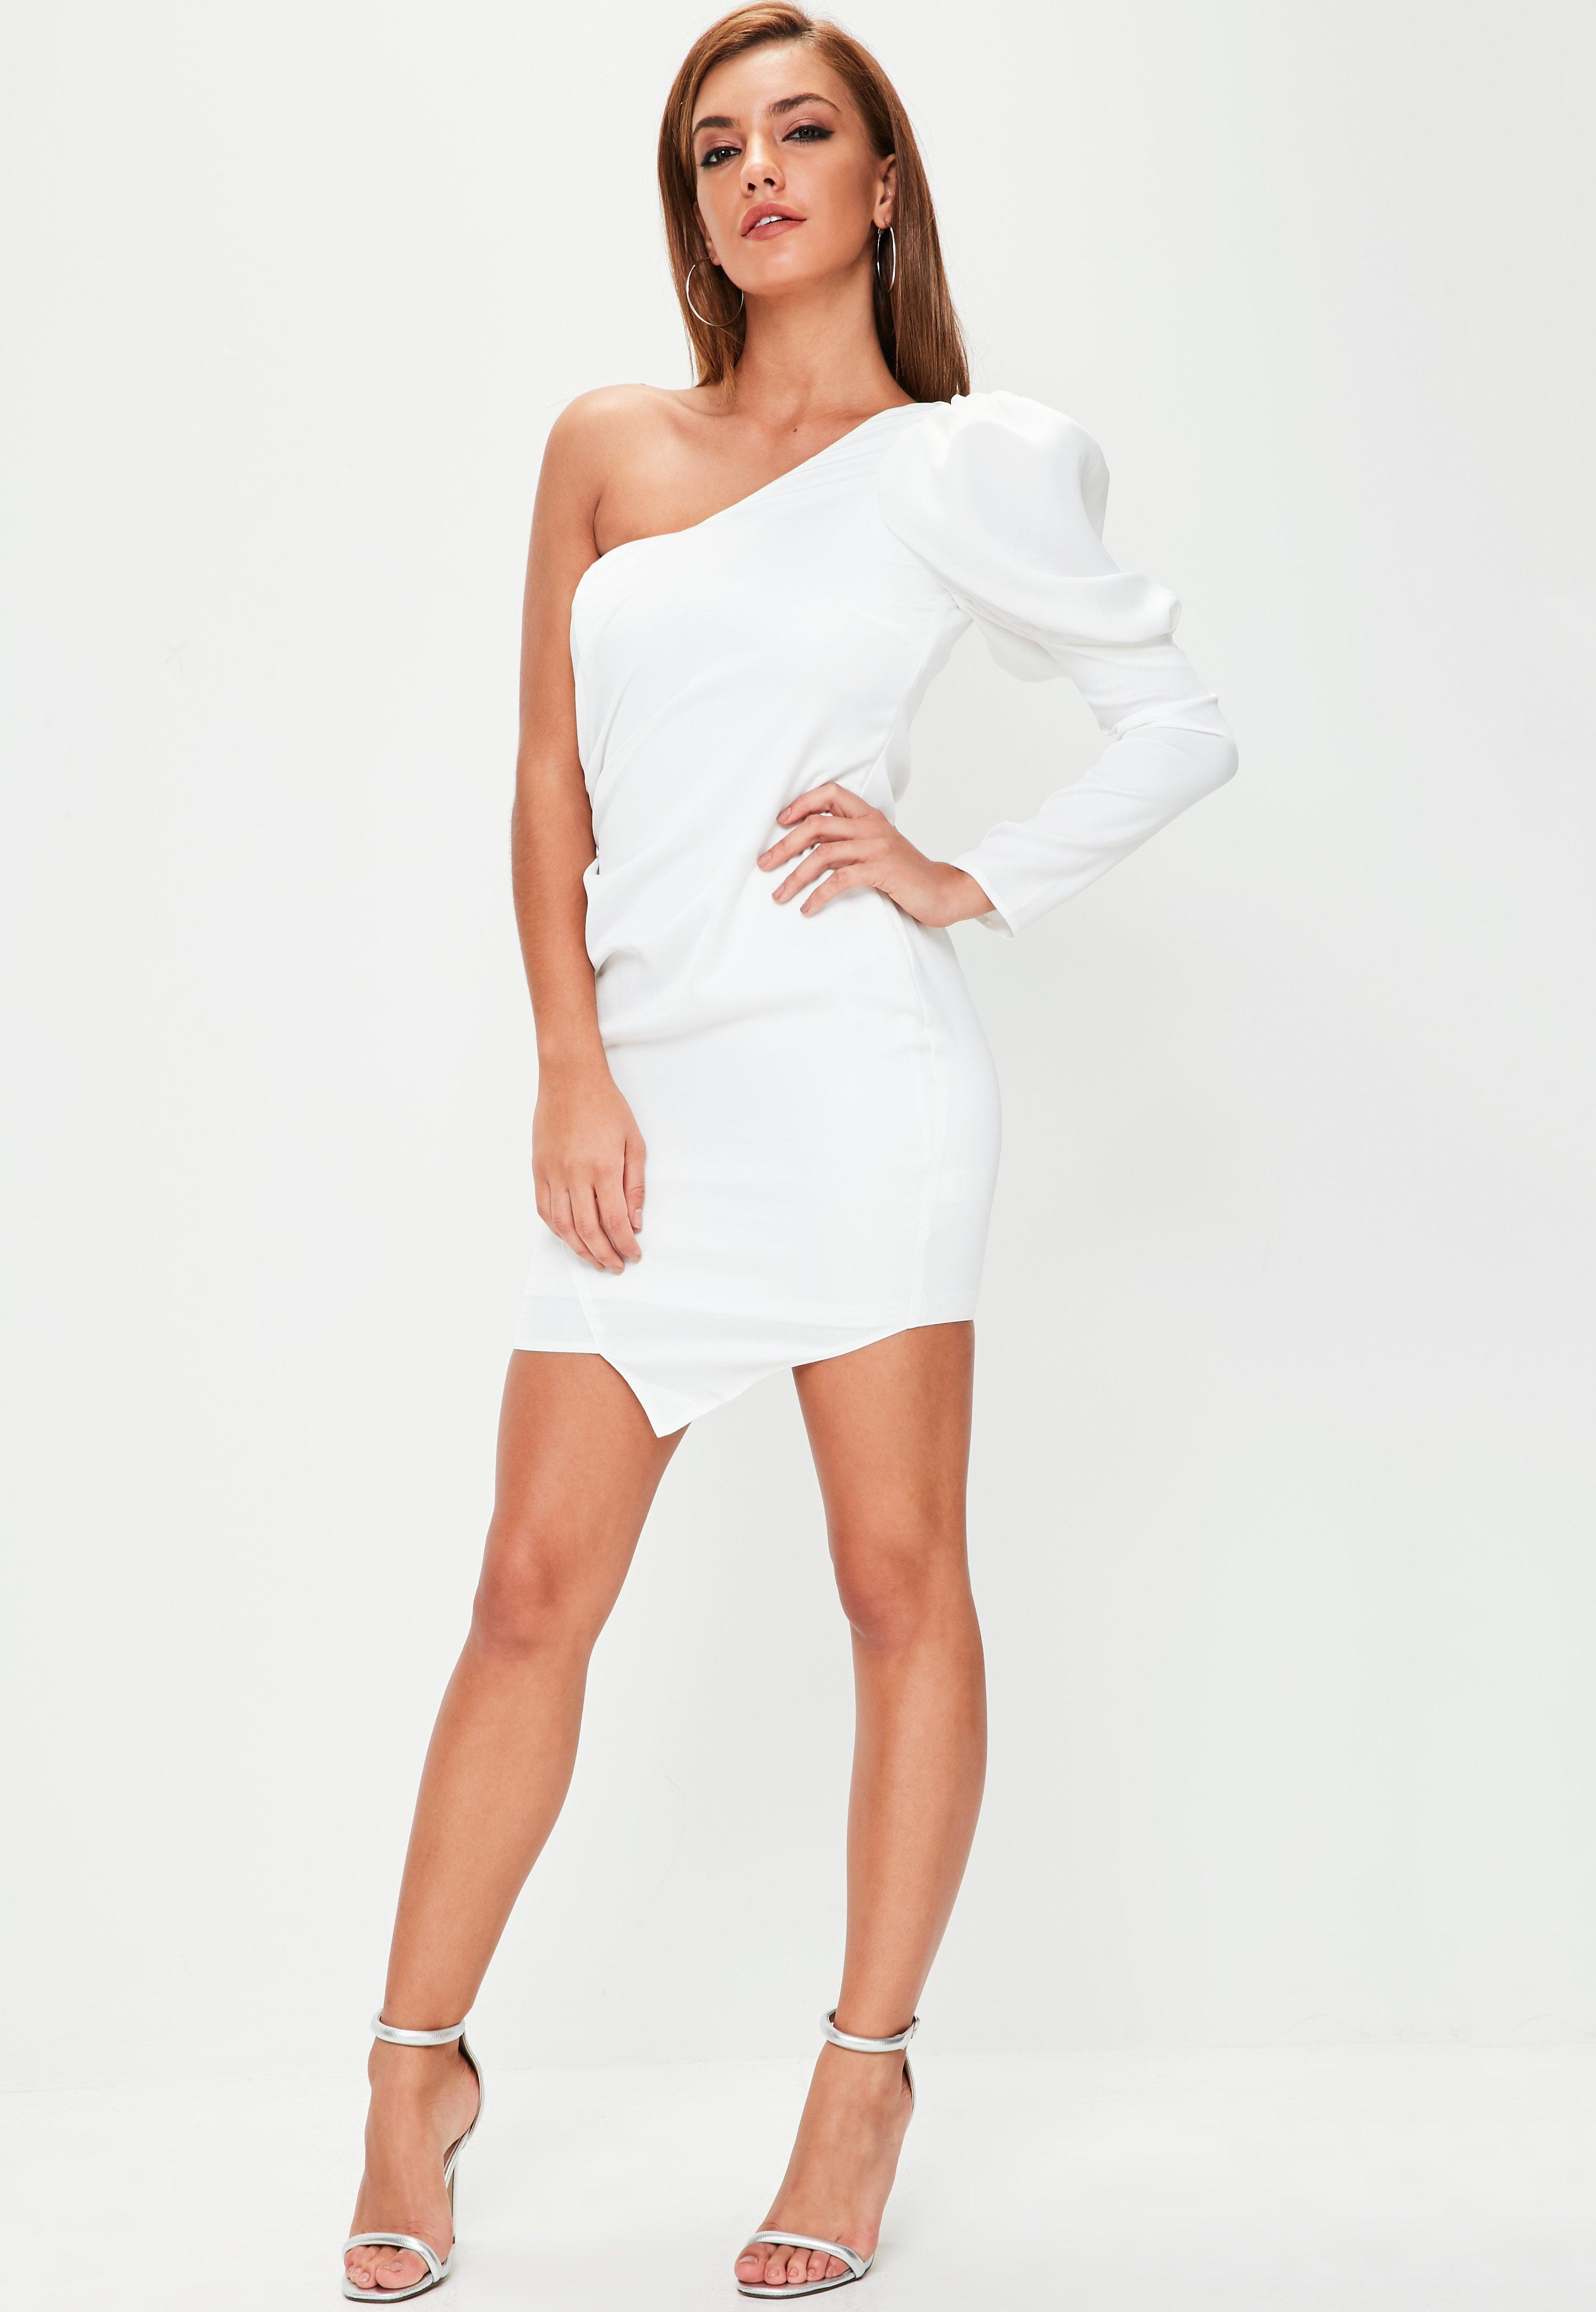 7c448fb300479 Lyst - Missguided White Puff Sleeve One Shoulder Mini Dress in White